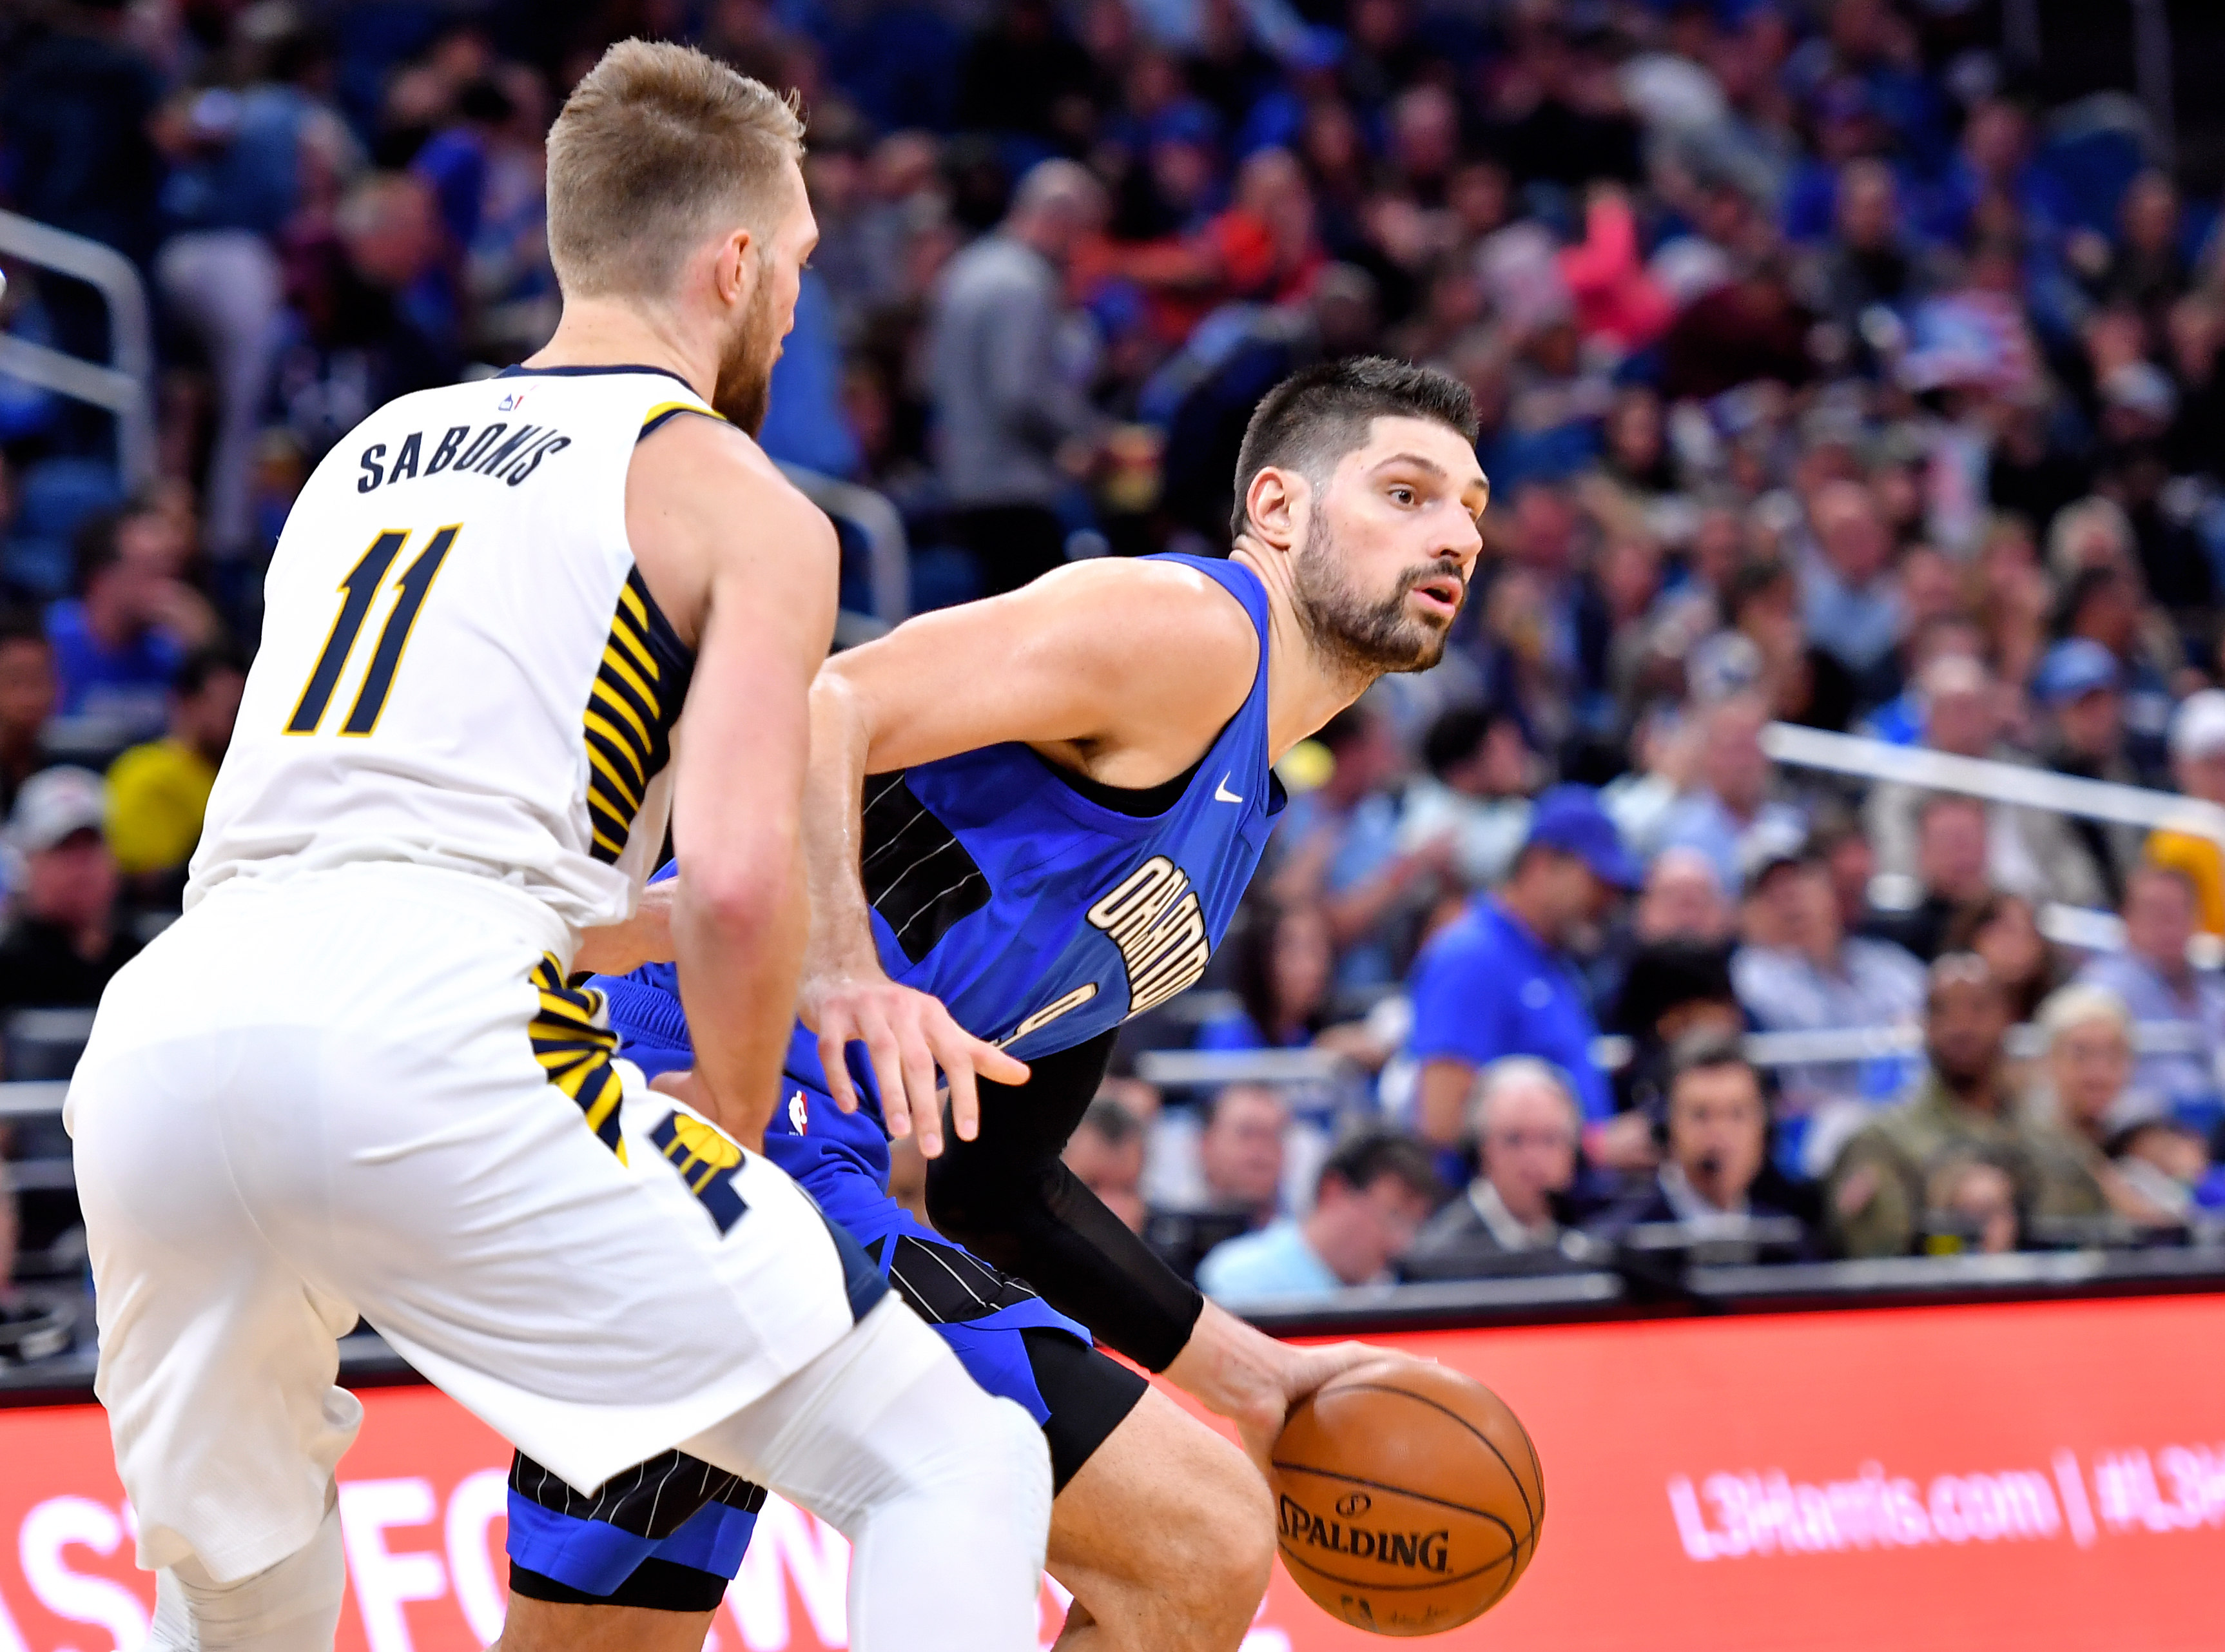 Orlando Magic center Nikola Vucevic is guarded by Indiana Pacers forward Domantas Sabonis during the second half at Amway Center.